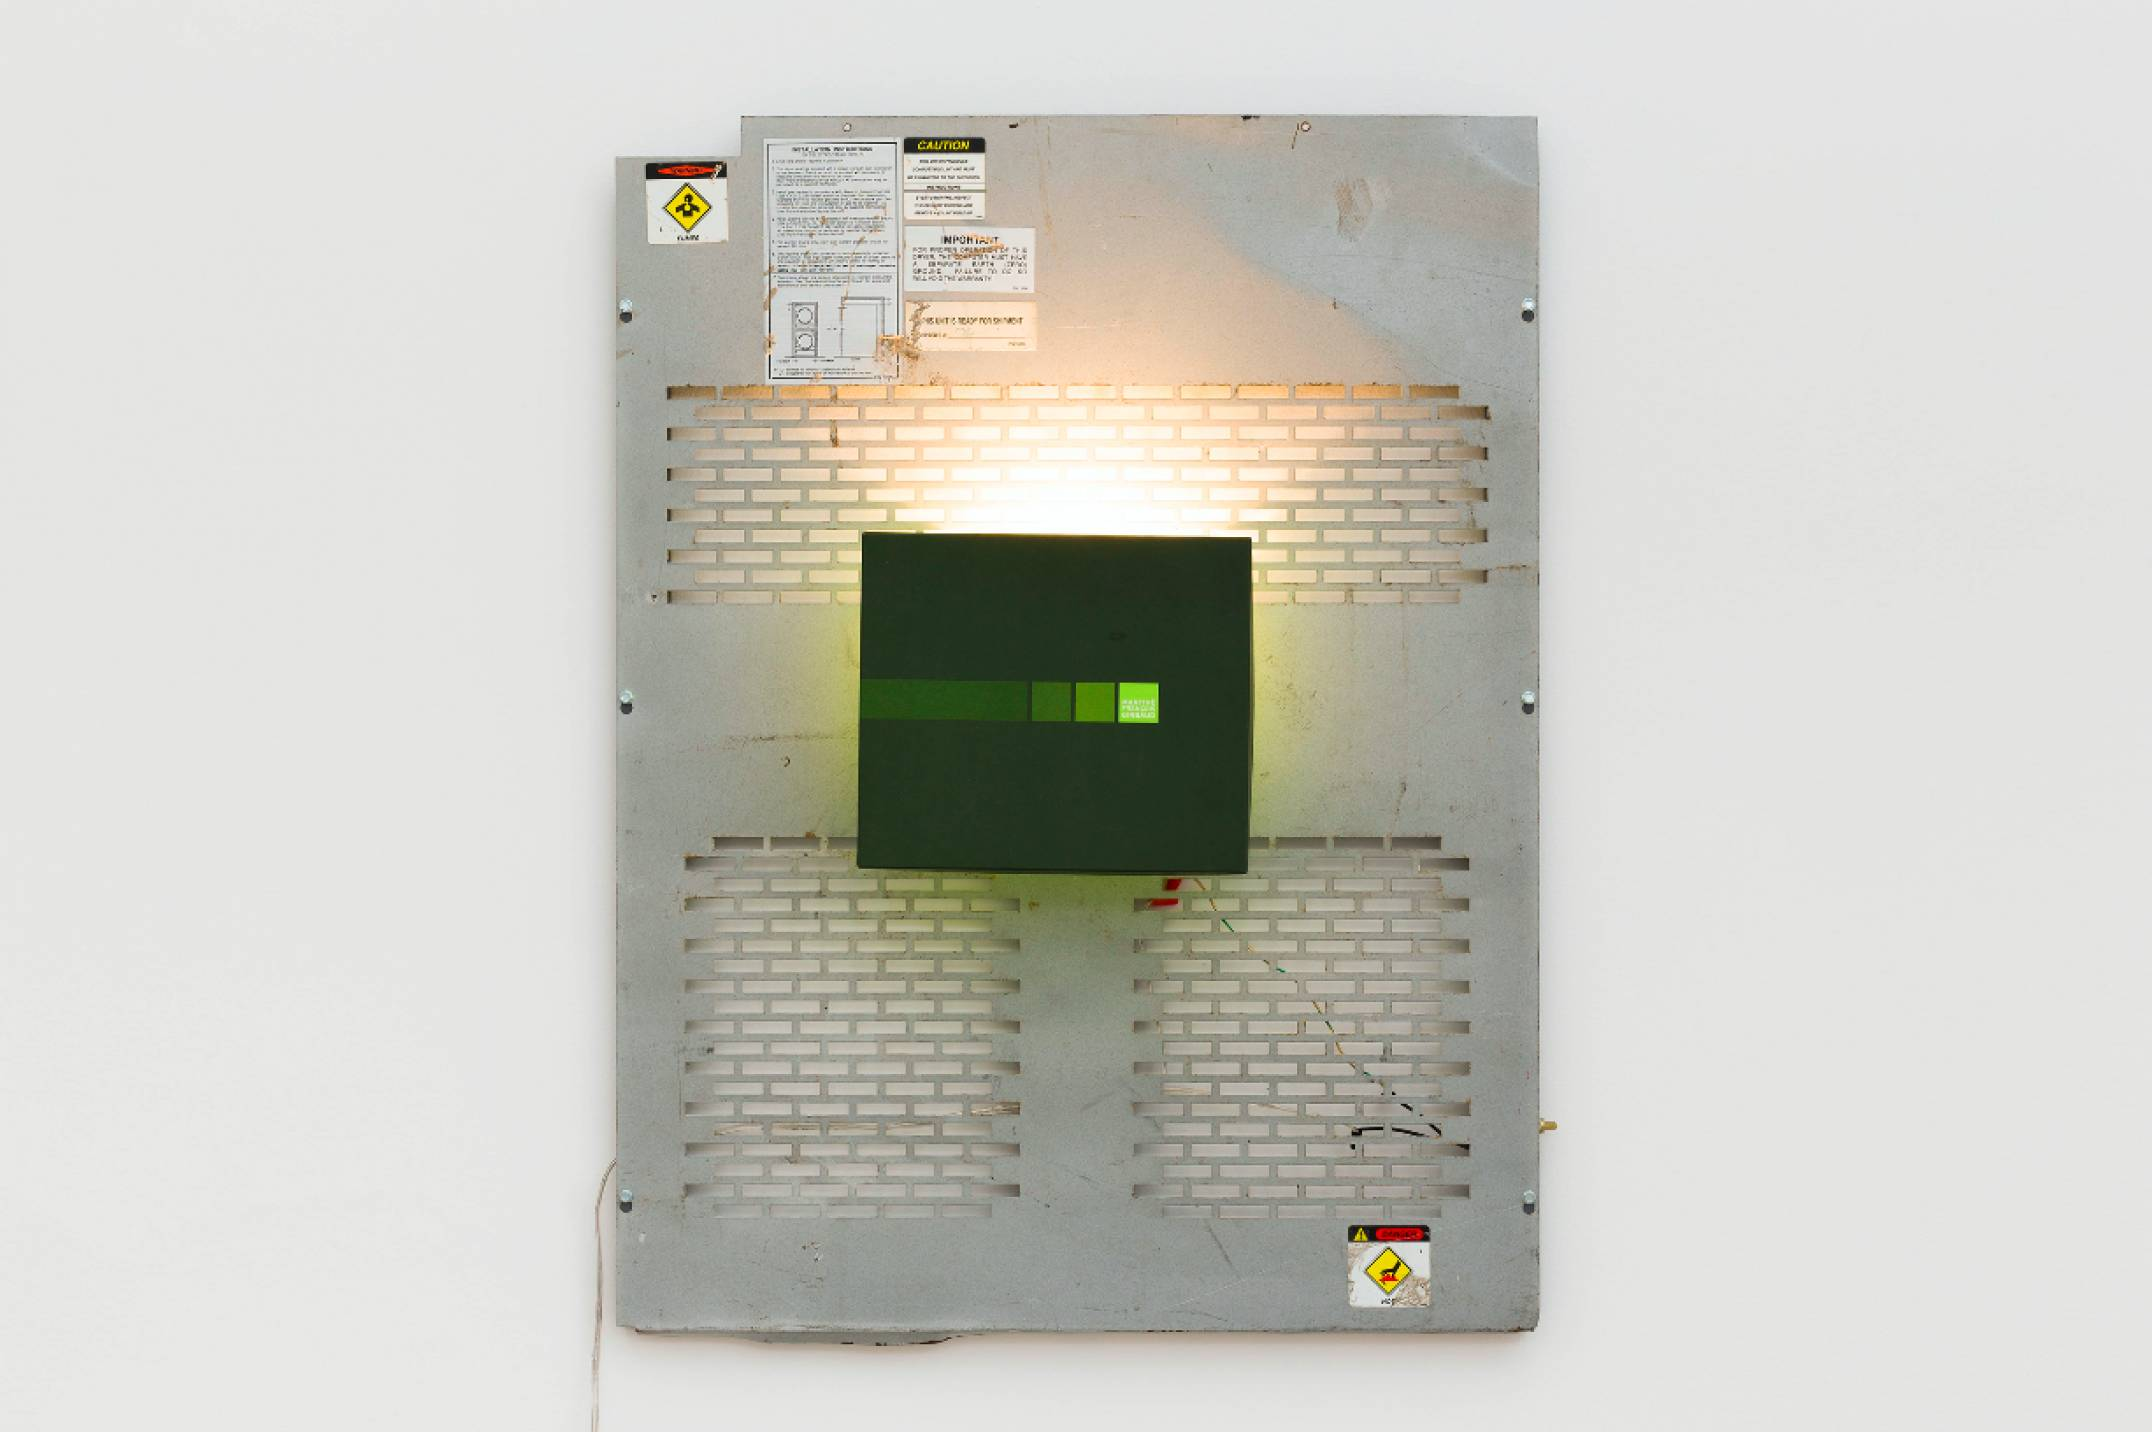 Aki Sasamoto, <em>Shoebox Wall Sconce (Marthe Francoise Girbaud),</em> 2016, shoebox lid, backboard of a used laundry machine, wall sconce, wood, LED light bulb and push button switch, 81,3 × 66 × 17,2 cm - Mendes Wood DM